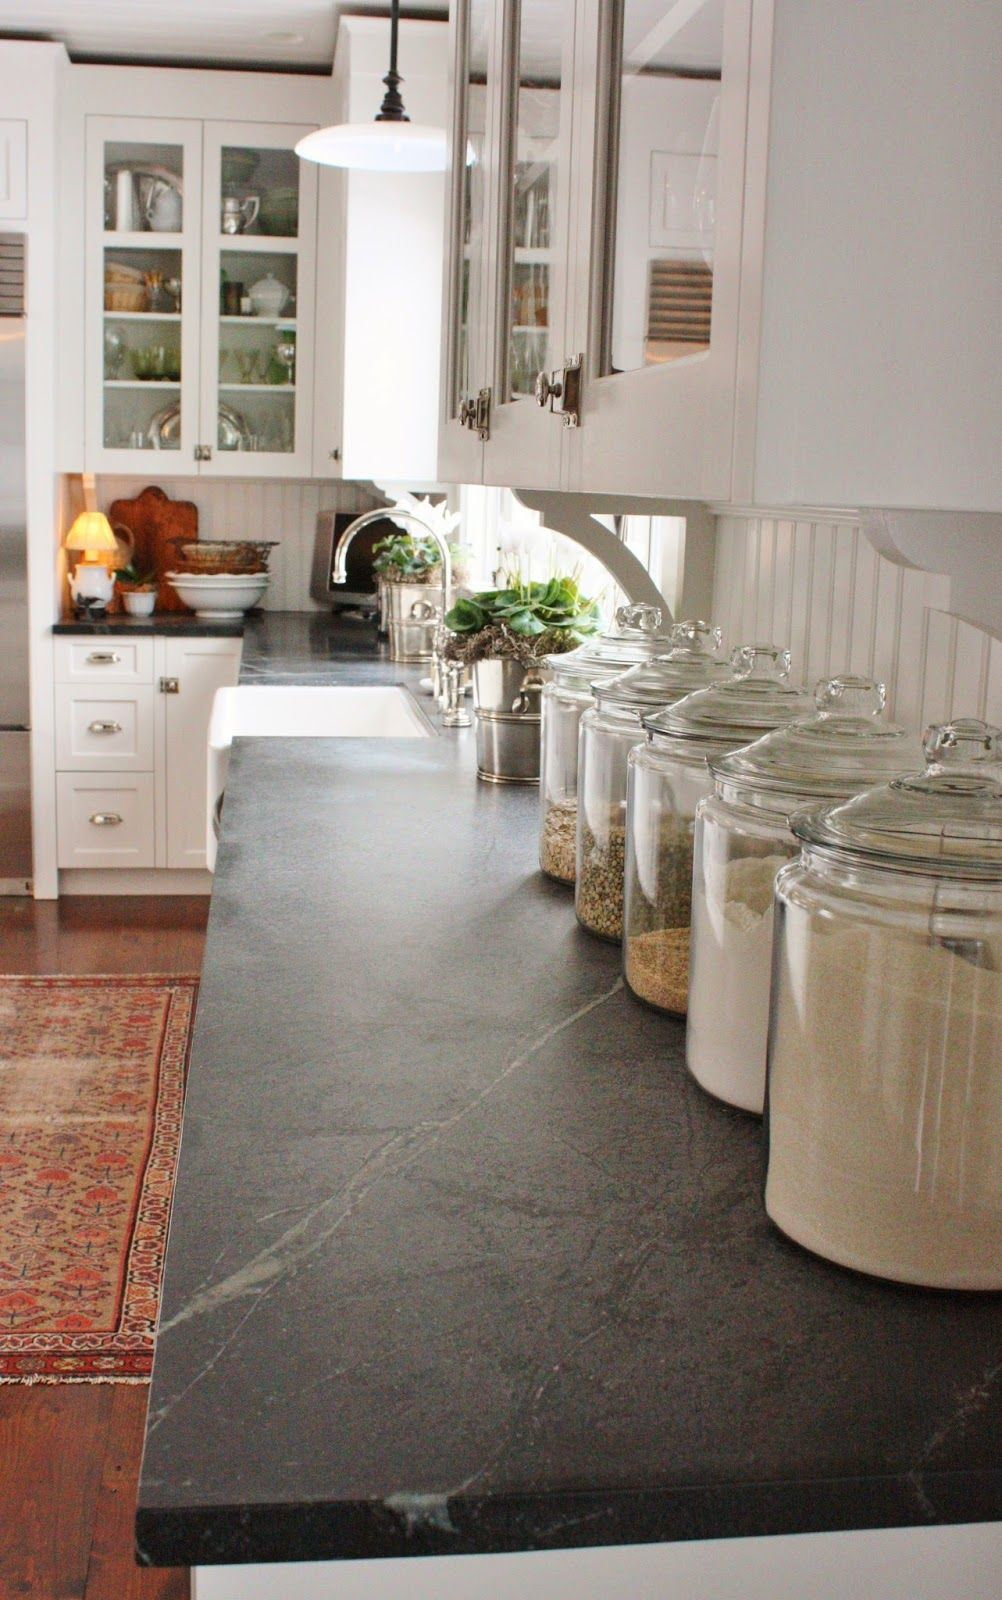 Soapstone Kitchen Counters Child Set For The Pinterest Countertops With Marble Sandstone